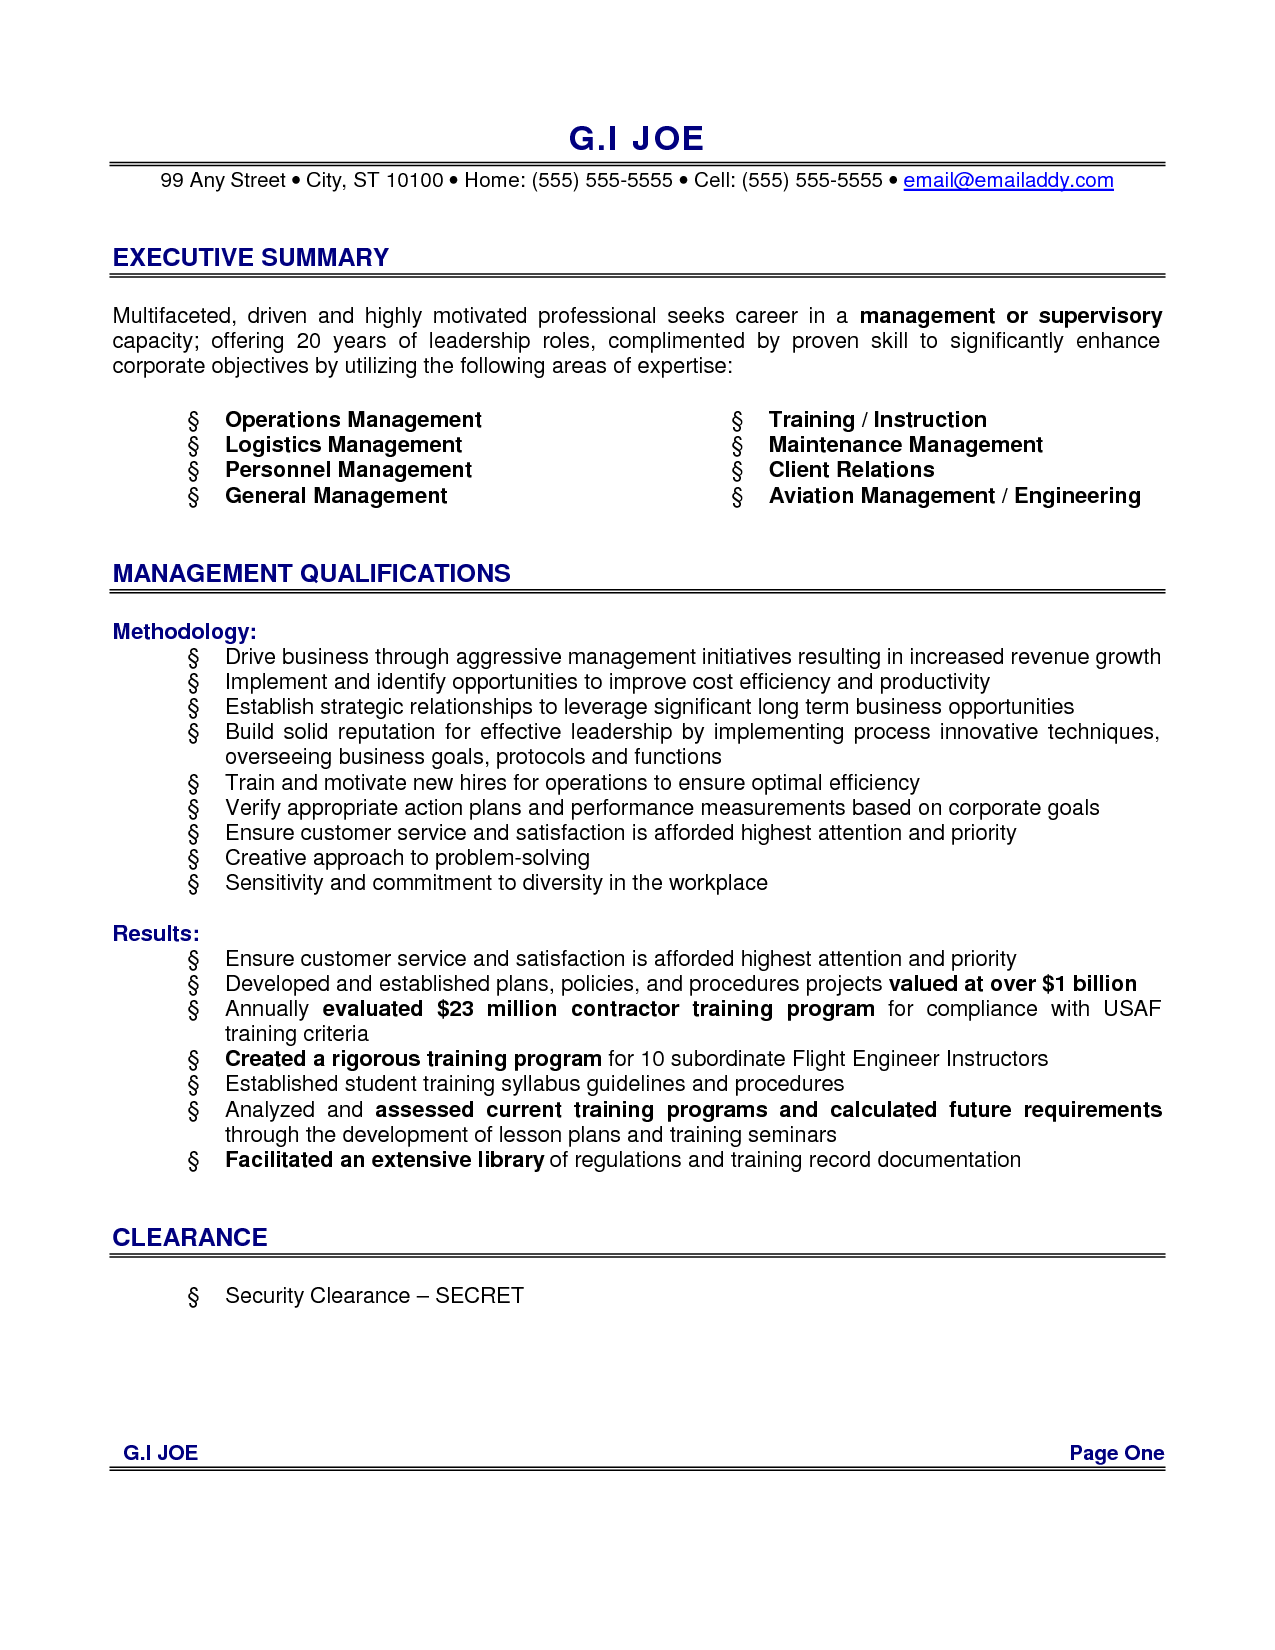 Resume Examples For Executive Summary With Management Qualifications ,  Executive Resume Example As Writing Guidelines  Qualifications Summary Resume